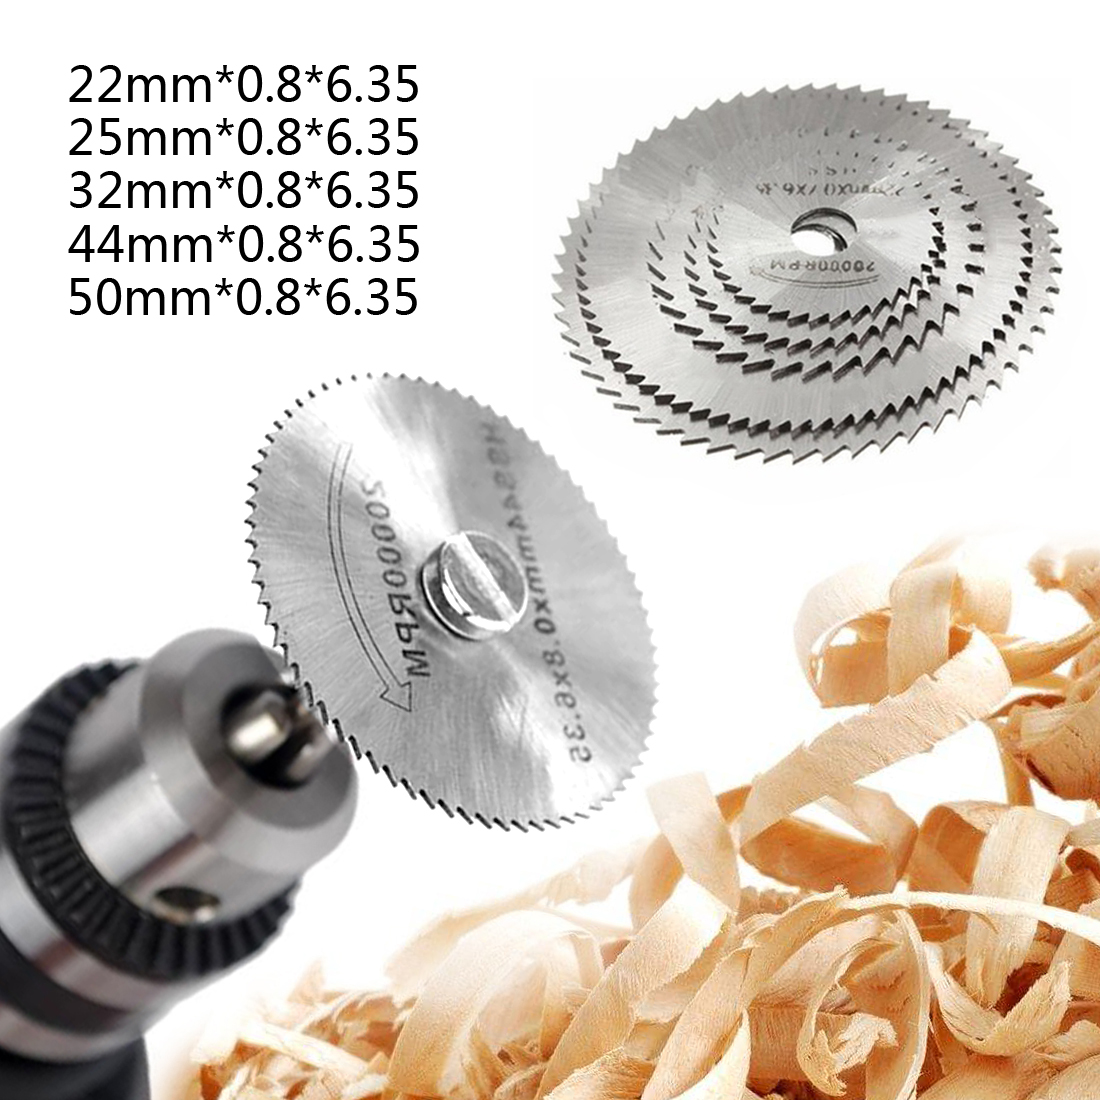 Creative Mini Hss Rotary Tool Saw Blades For Metal Cutter Power Set Wood Cutting With Rods 22 25 32 44 50mm